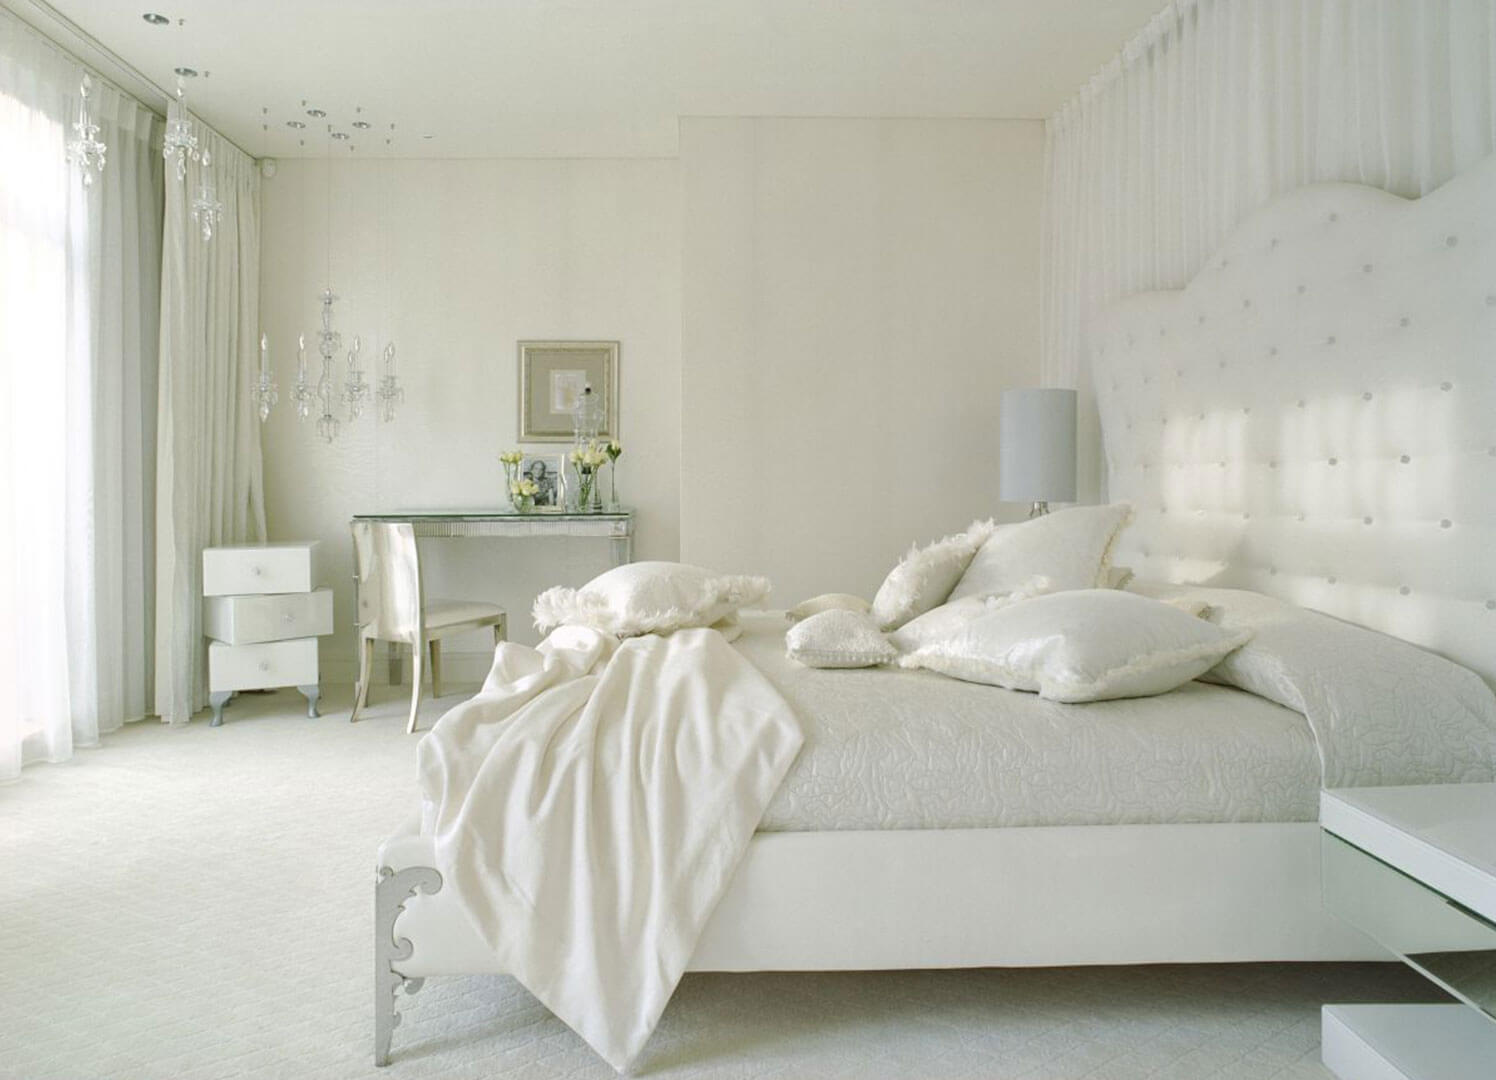 Brilliant white bedroom designs with white bed sheets, cabinets, chairs walls, drapes white curtains, pillows, white headboard. The only contrast is way that the furniture shade is cast on the ground.